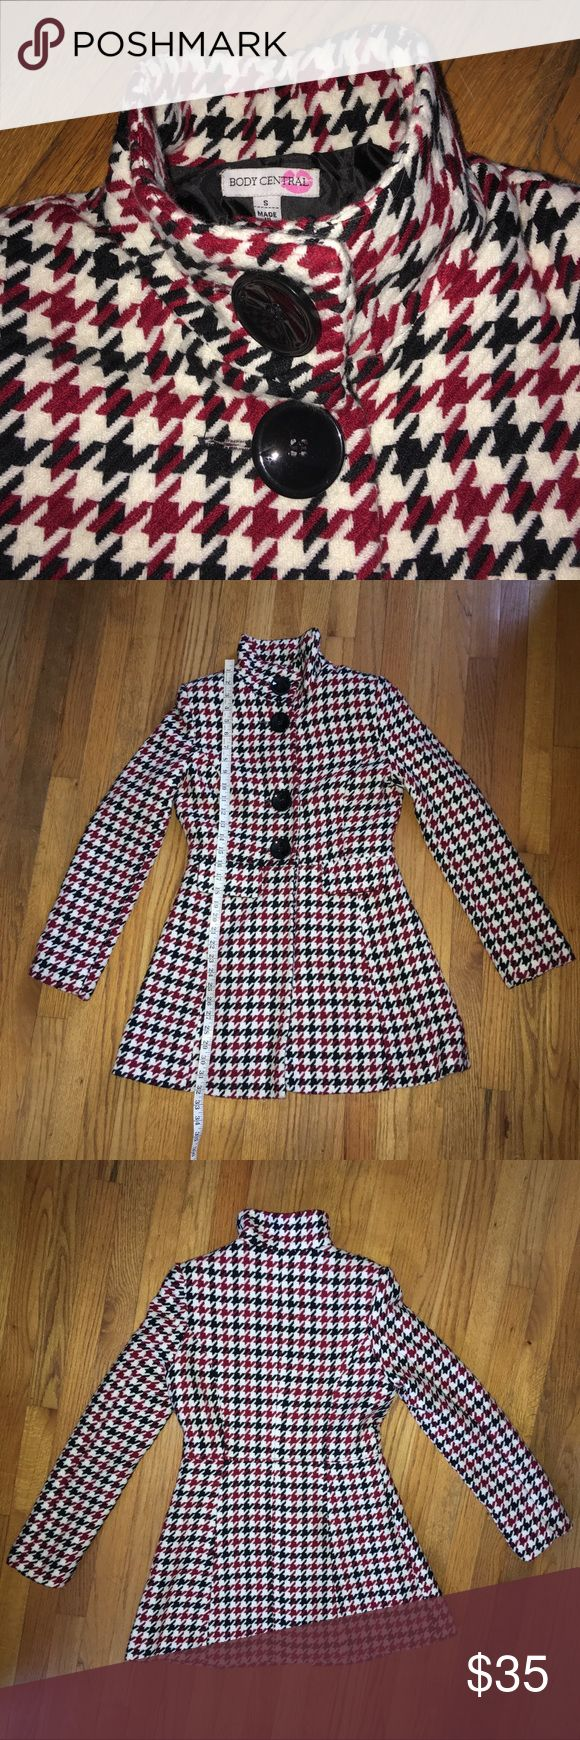 Body Central Houndstooth Coat. Body Central Houndstooth Coat. Front pockets with flaps. In good preowned condition. See photos for material and measurements. Sadly this is way too big for me. I acquired this secondhand and see no major issues. ❌Sorry, No Trades❌ Body Central Jackets & Coats